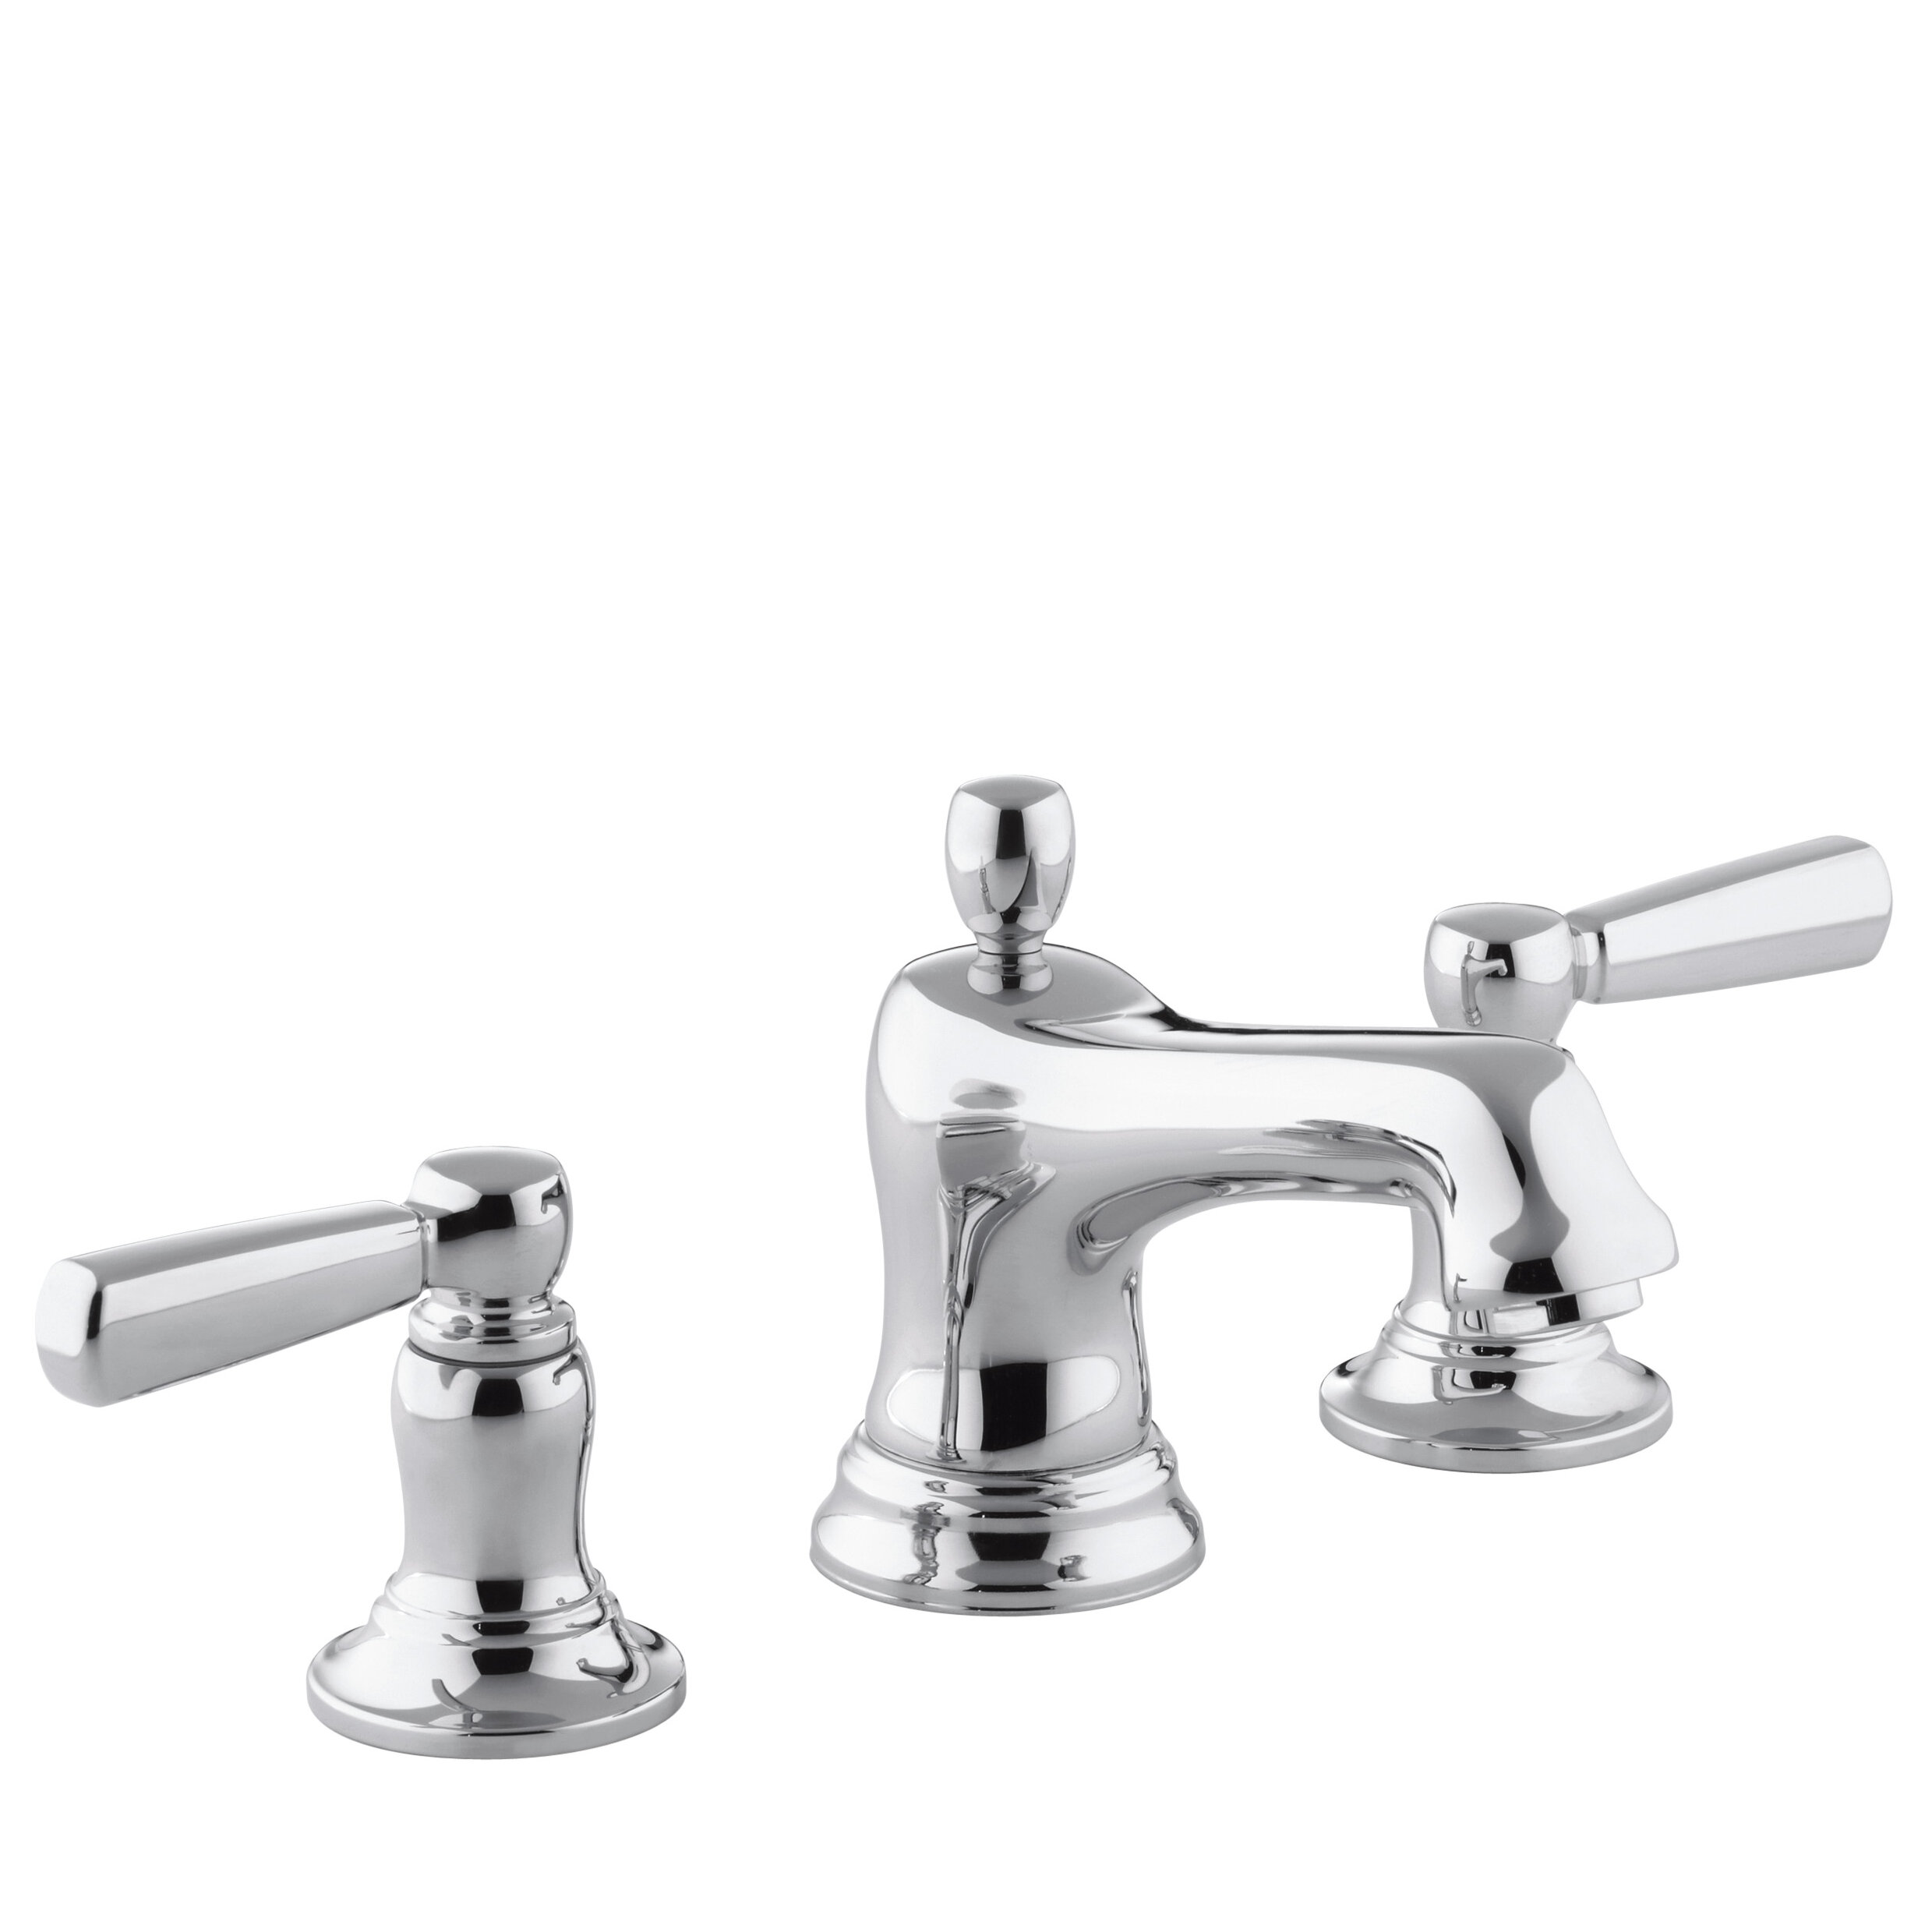 phirster bathroom pfiister dp fister faucet polished bath vessel kenzo sink pfister lavatory single widespread waterfall control lav